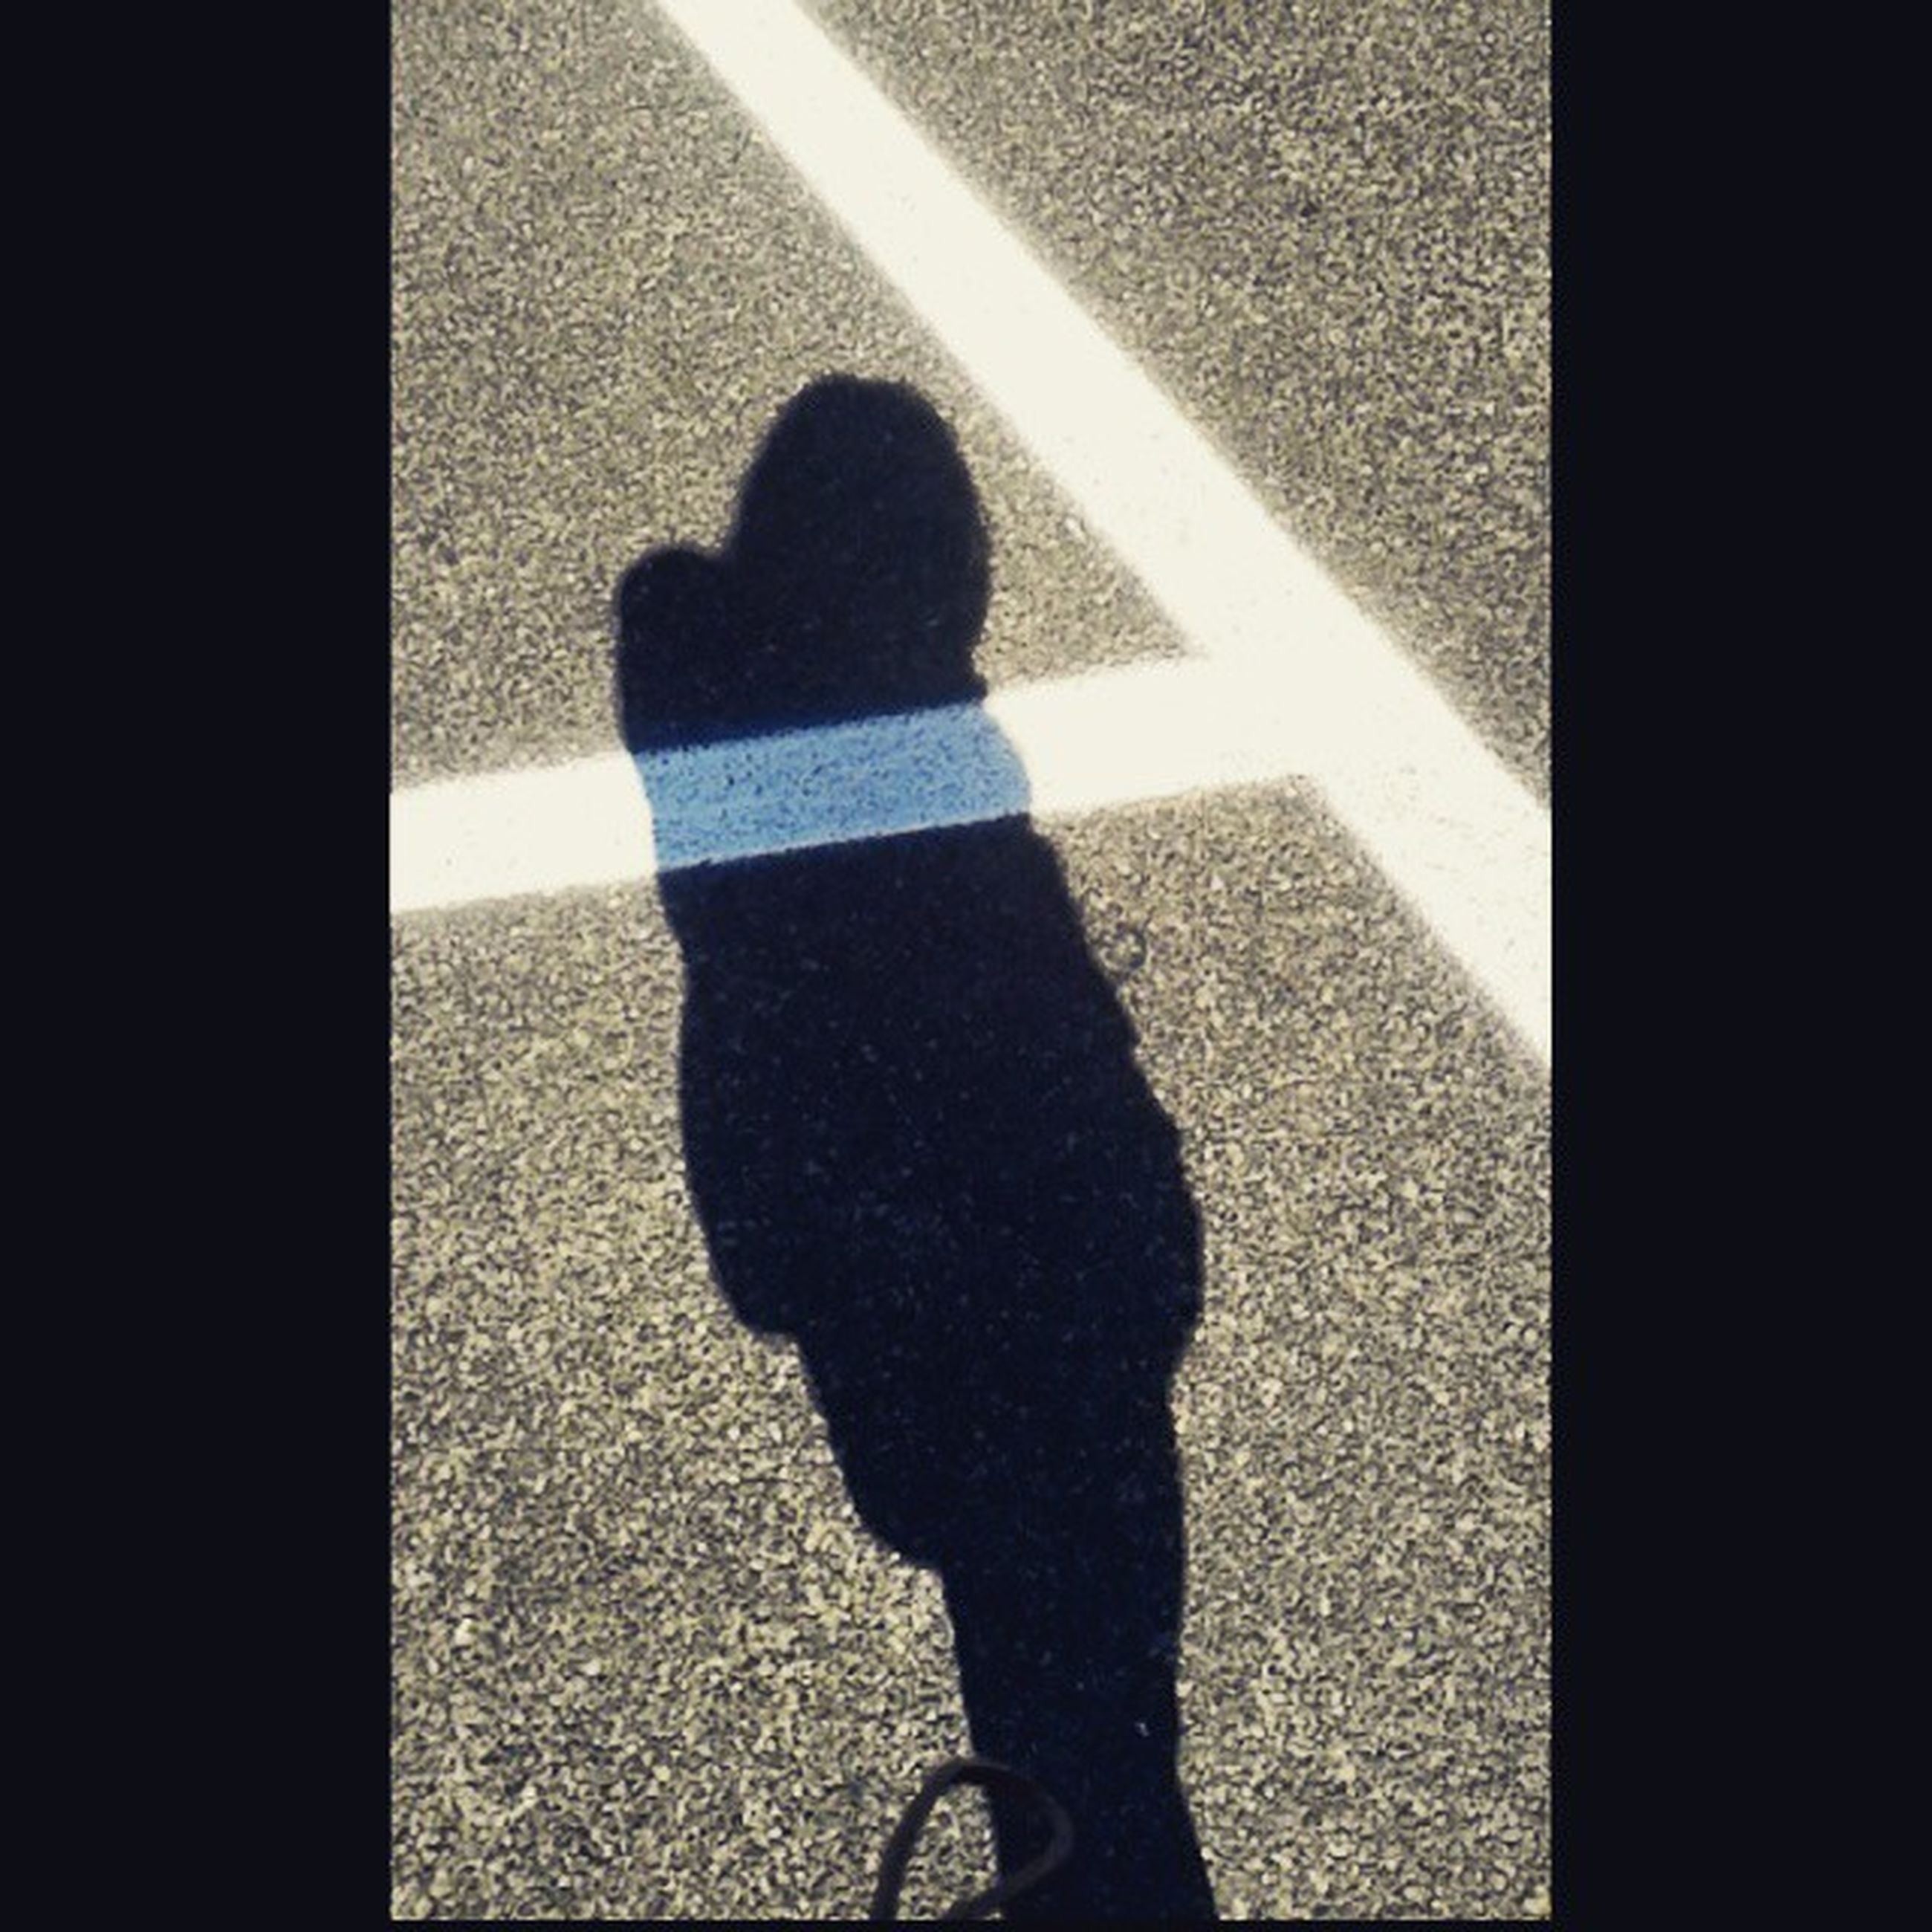 shadow, street, high angle view, lifestyles, sunlight, road, road marking, standing, focus on shadow, walking, men, leisure activity, low section, asphalt, unrecognizable person, day, outdoors, person